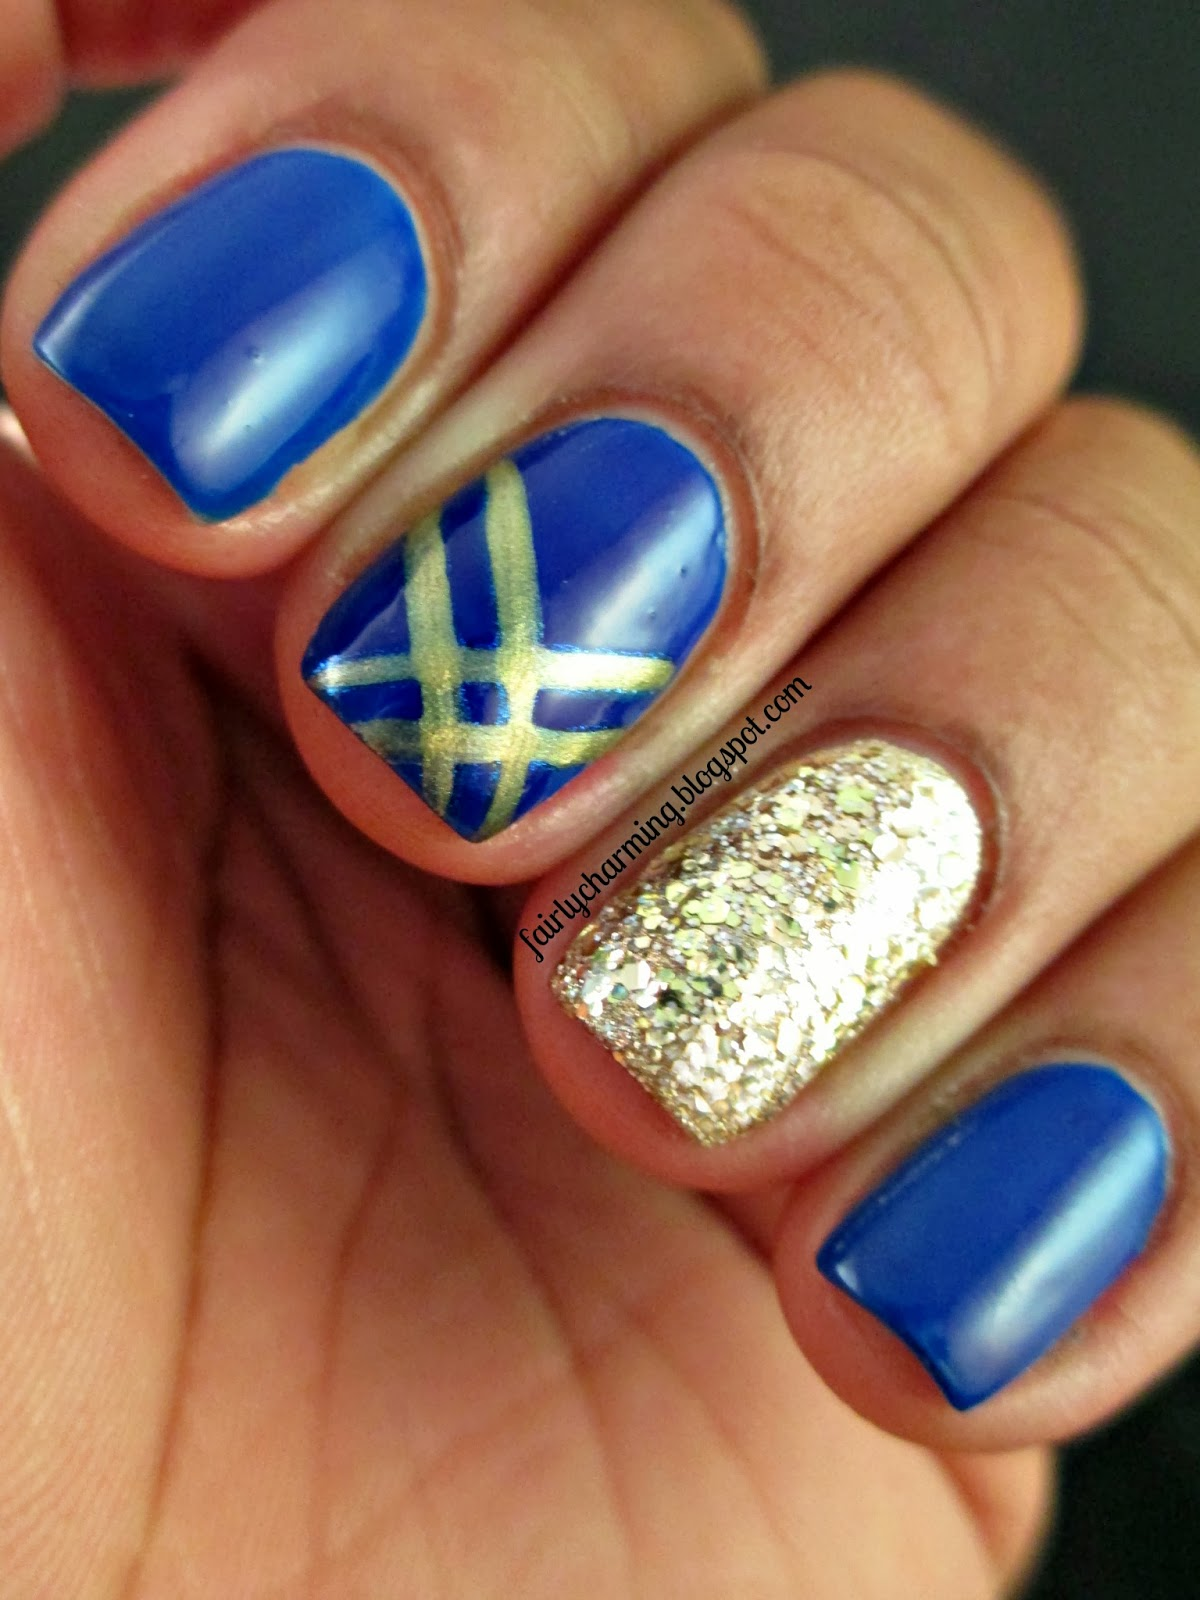 Kleancolor Blueberry Drama, Love & Beauty Gold Glitter, blue, gold, nails, - Fairly Charming: Trending Now - Blue & Gold